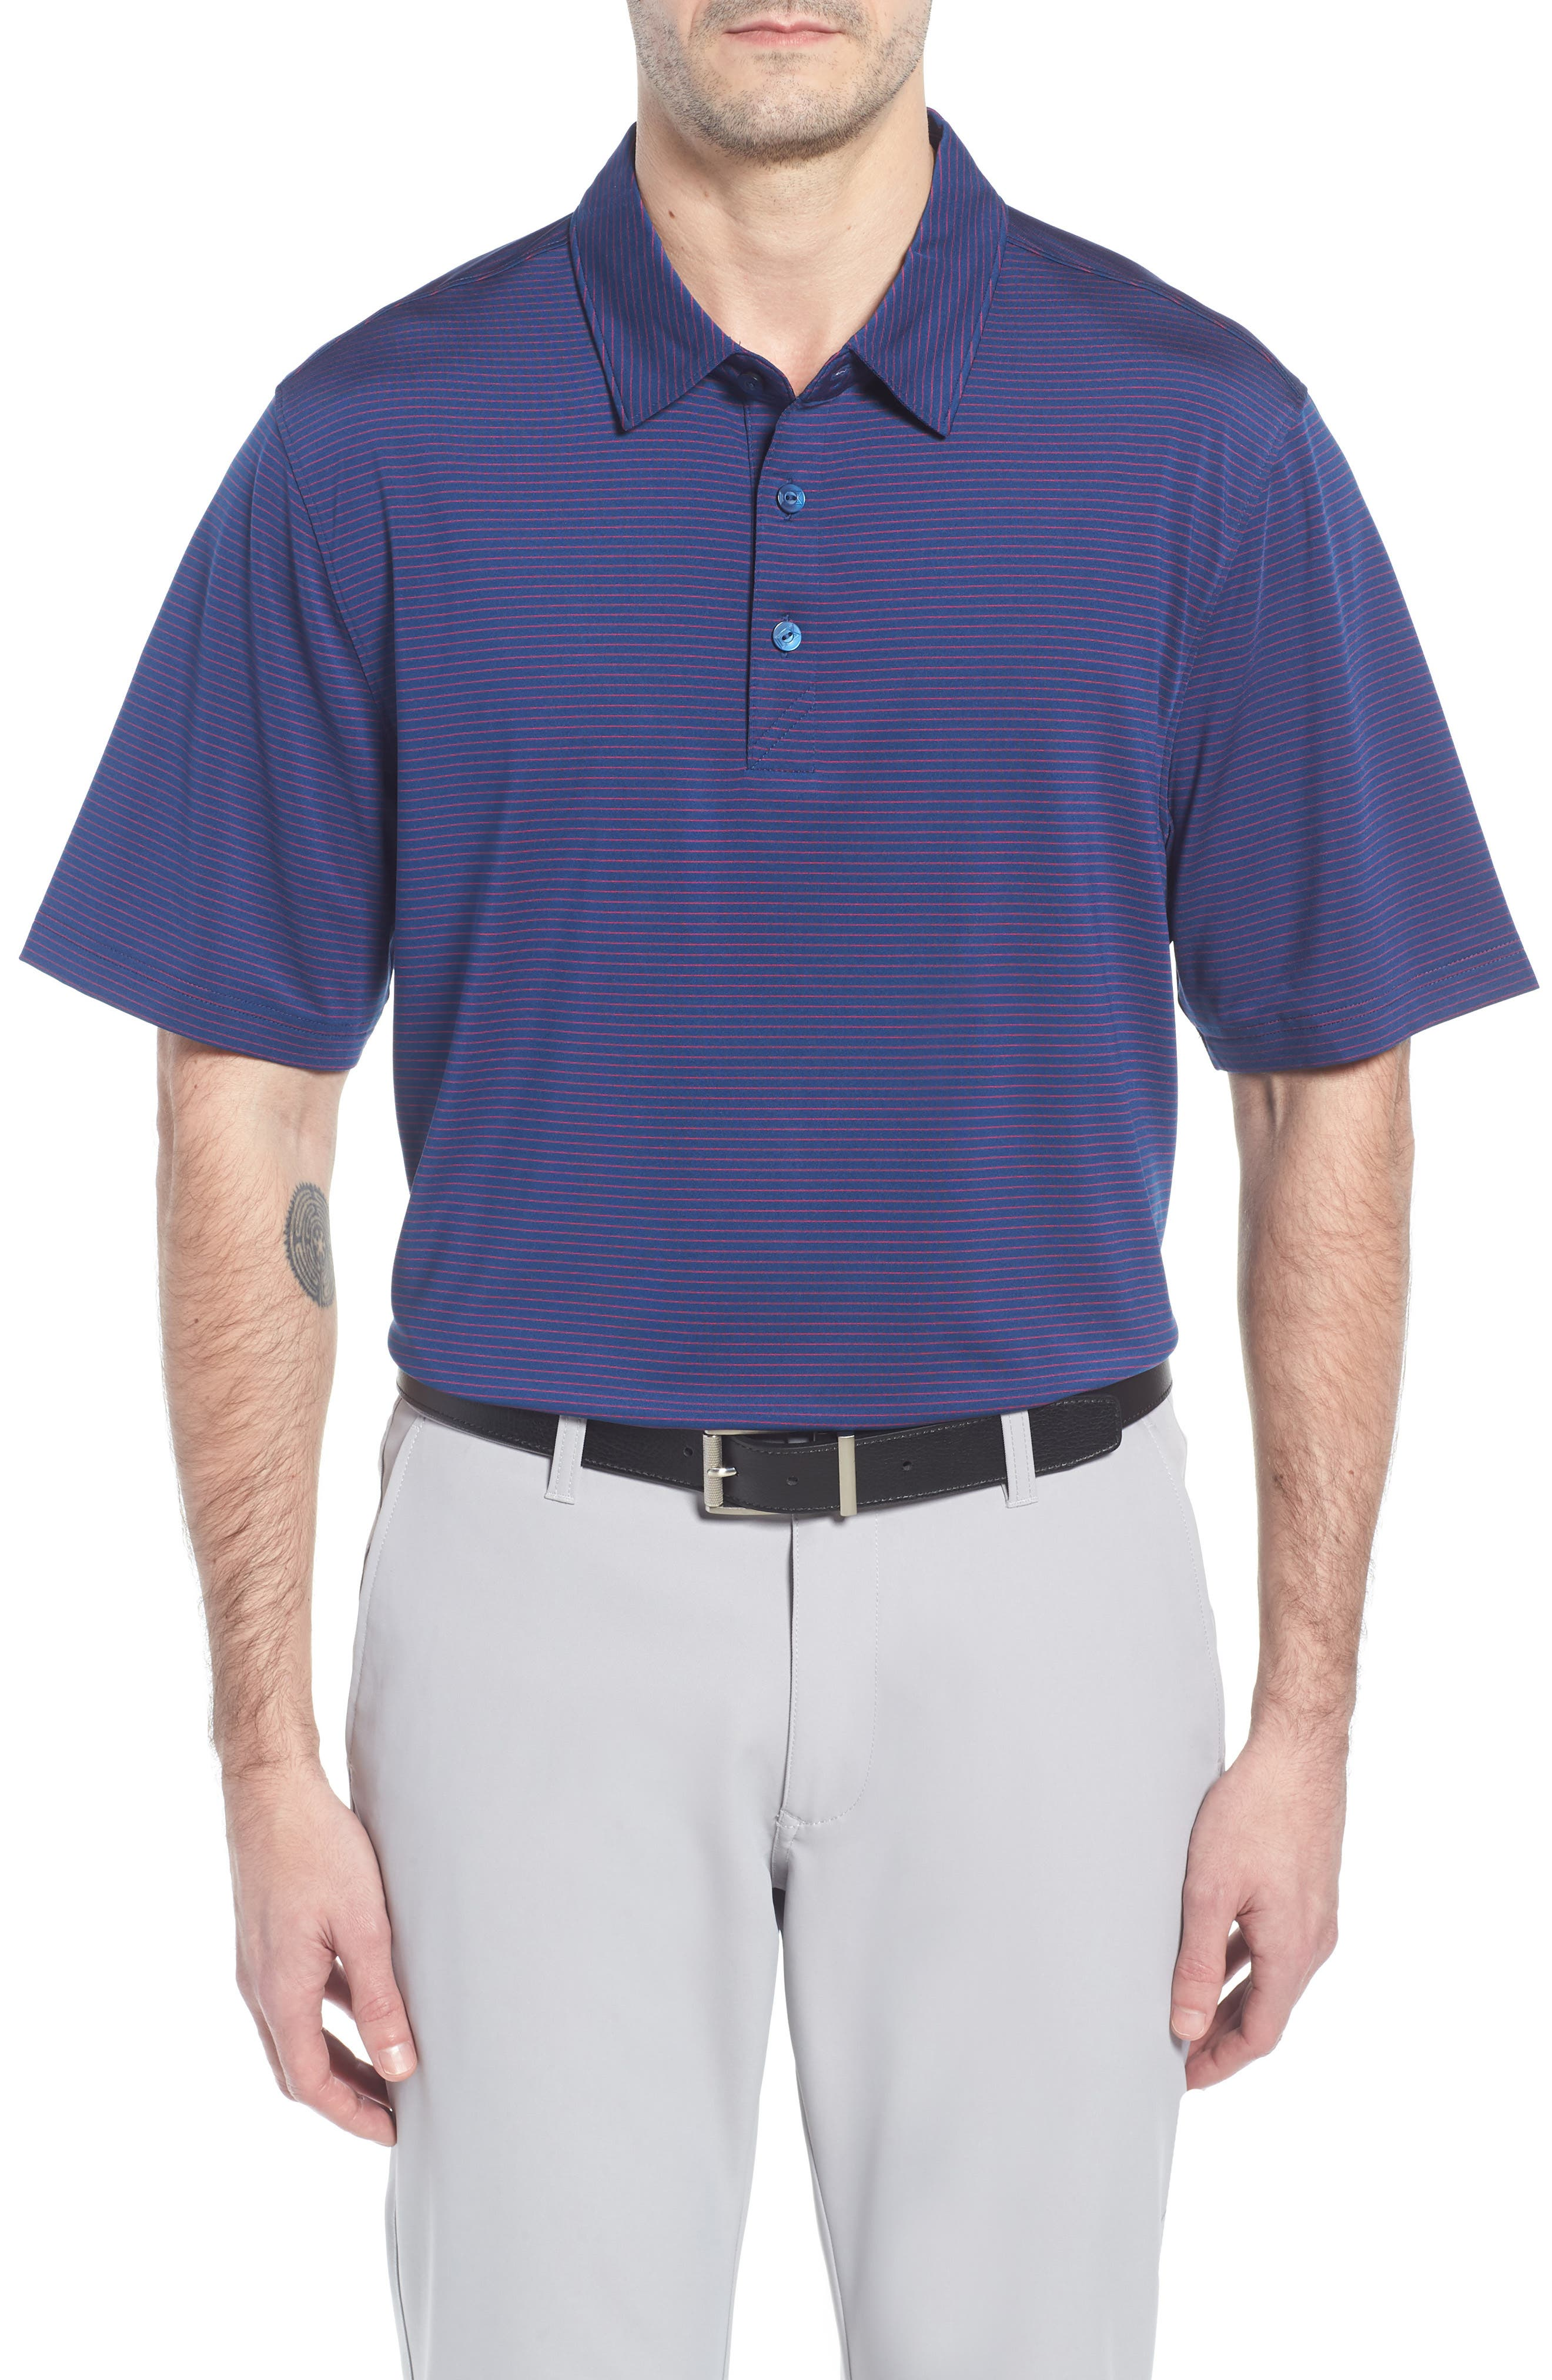 Cutter & Buck Samish Stripe DryTec Polo